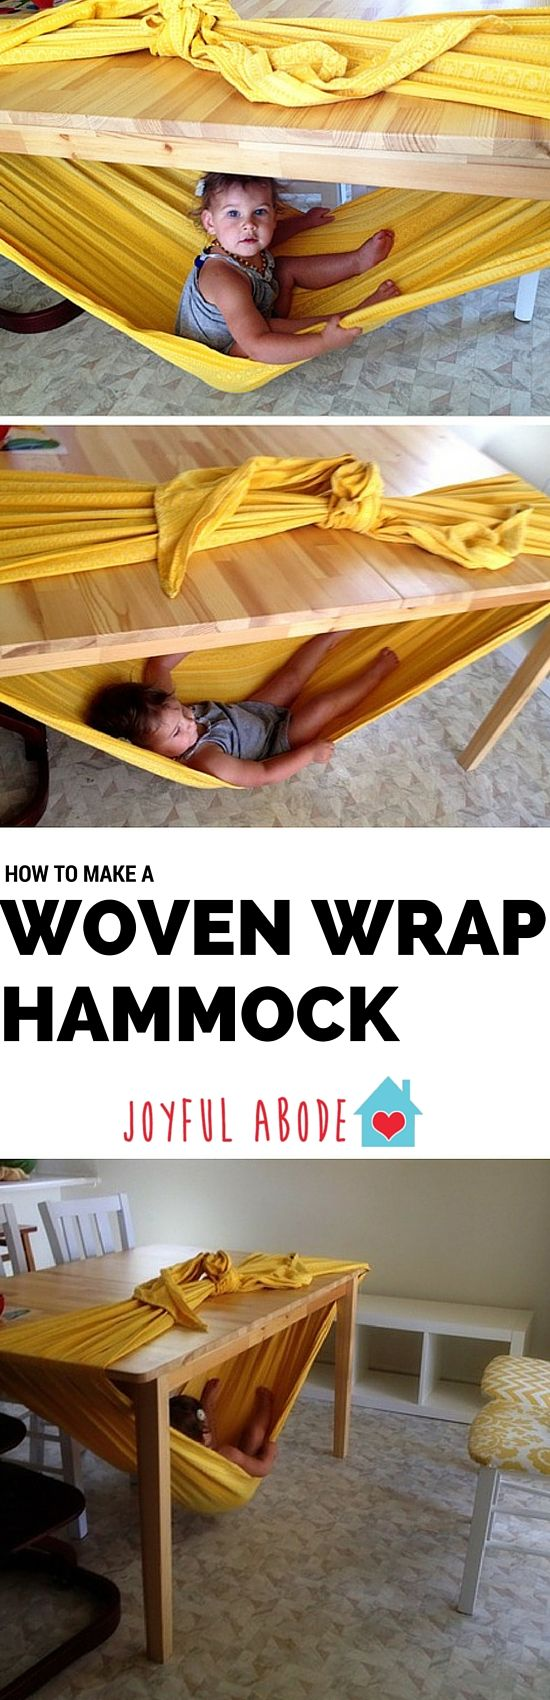 How to make a woven wrap hammock - tons of indoor rainy-day fun. Great kids' activity.